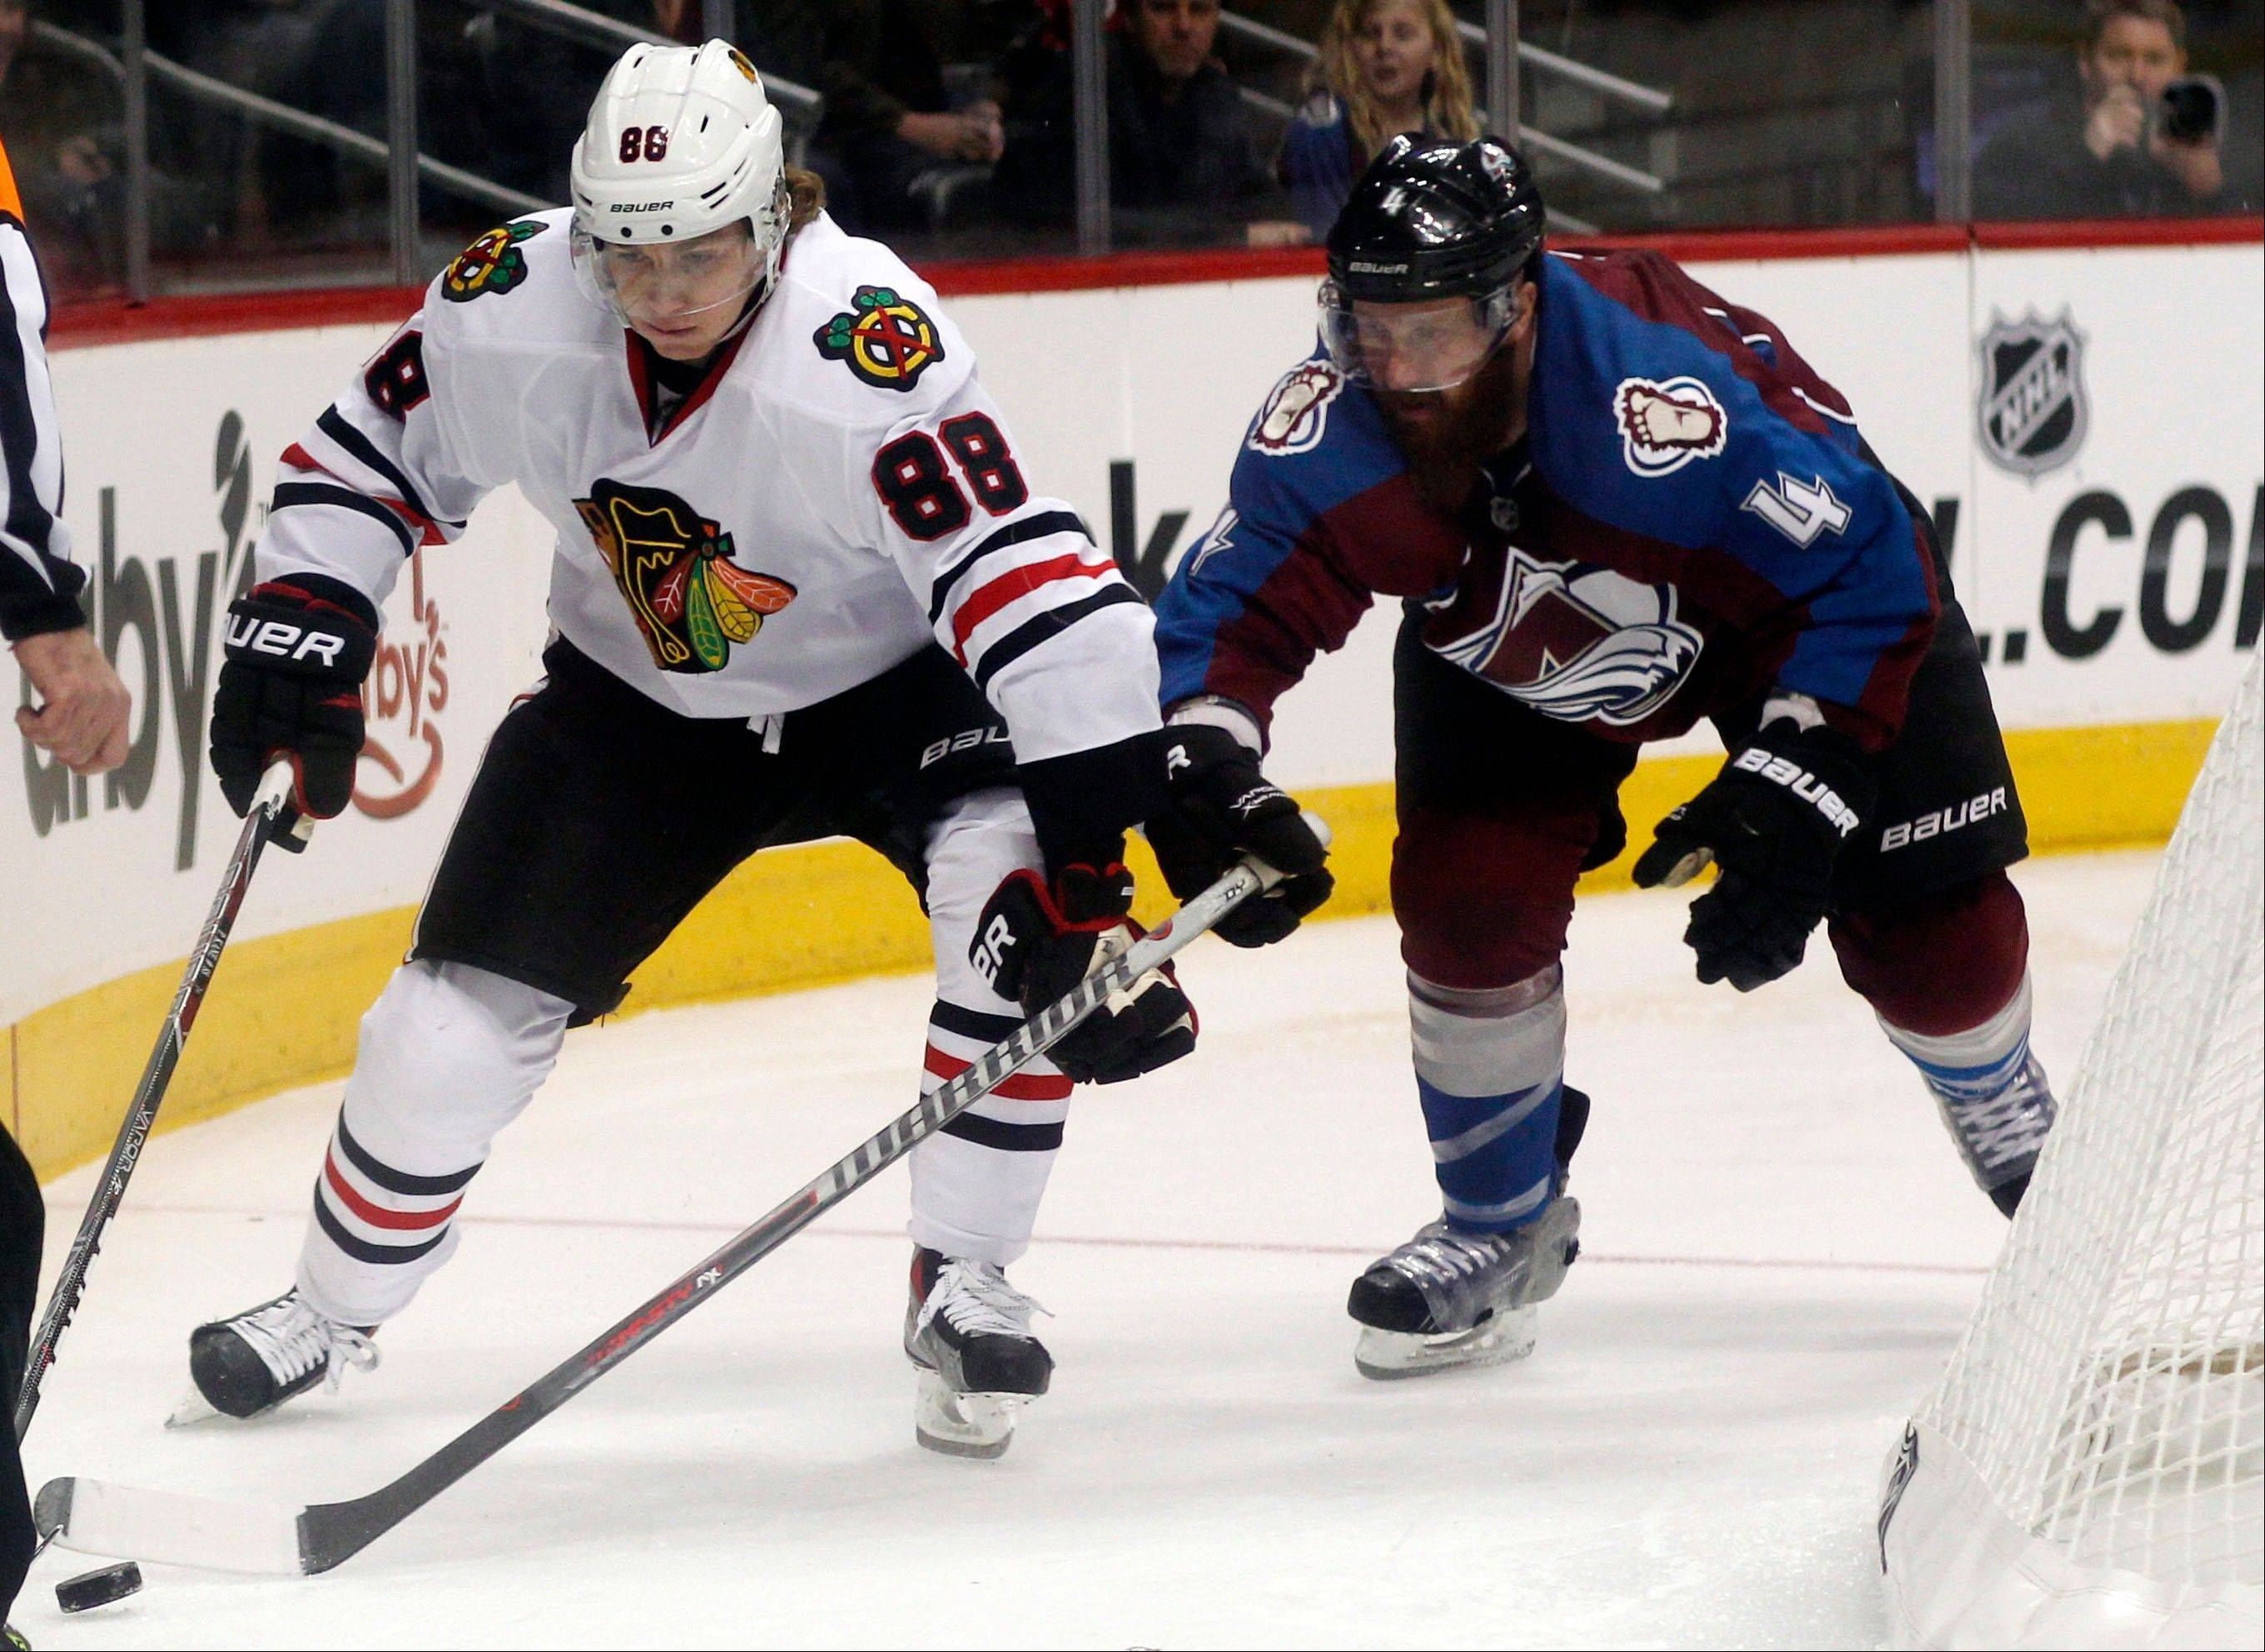 Chicago Blackhawks right wing Patrick Kane, left, works the puck behind the net as Colorado Avalanche defenseman Greg Zanon covers in the second period.